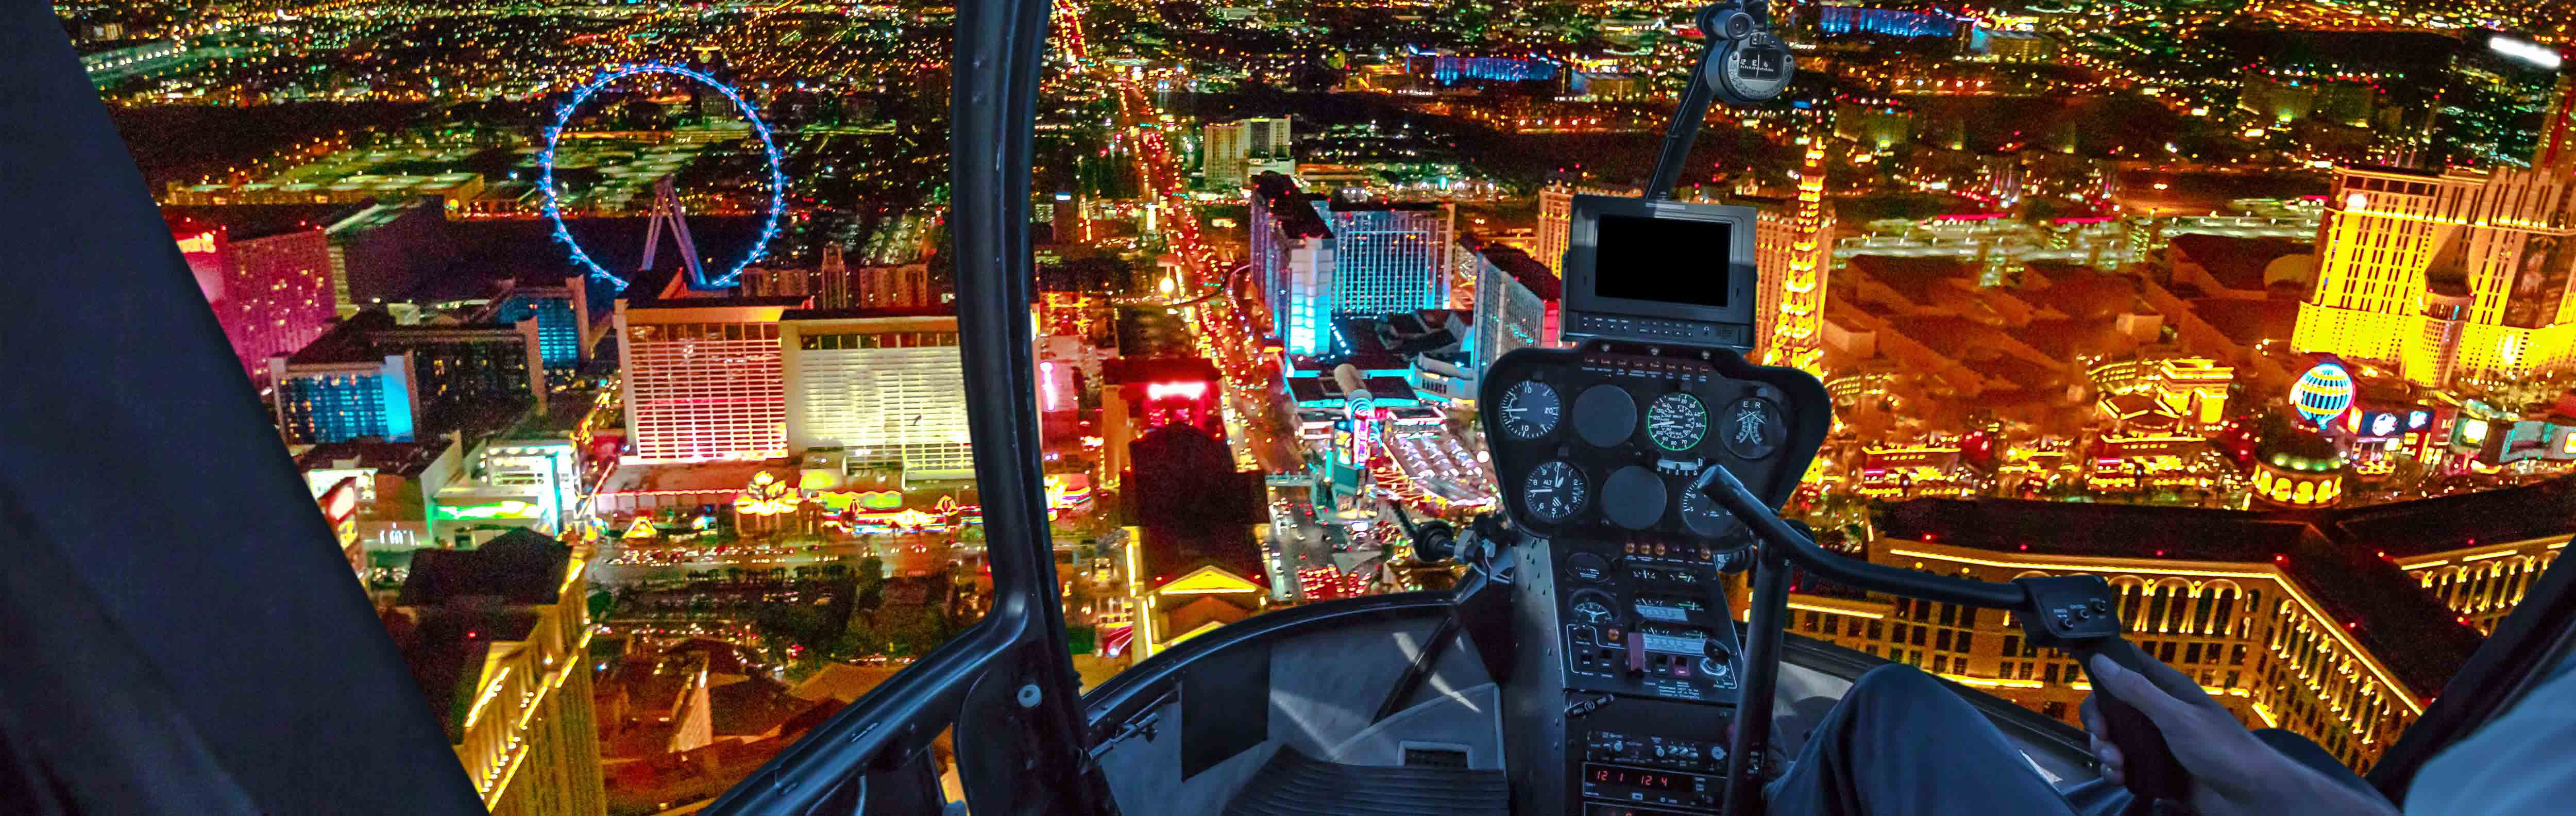 Helicopter ride down The Strip